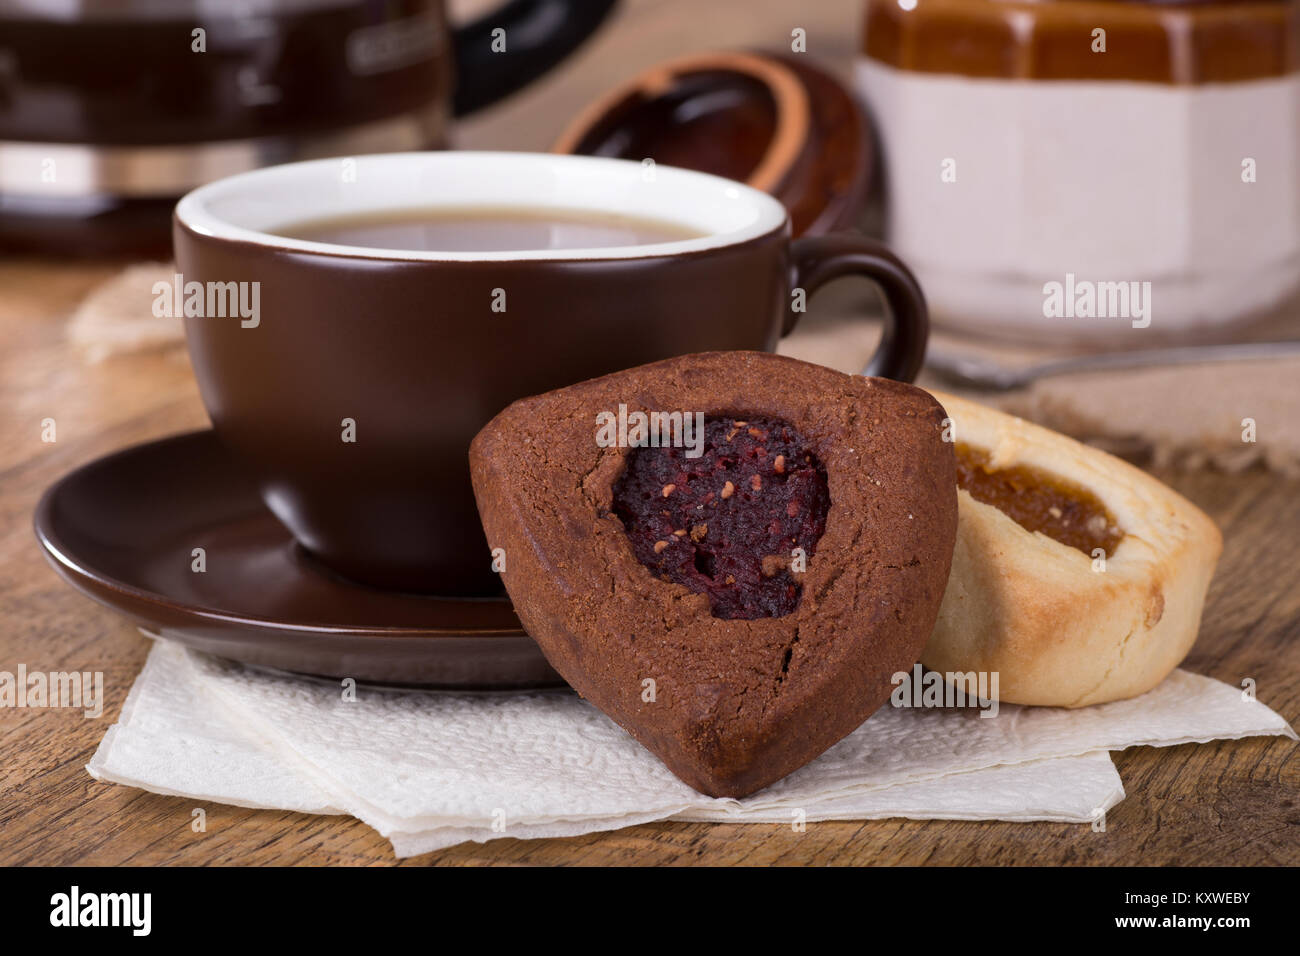 Raspberry and apricot filled hamantash cookies and cup of coffee - Stock Image